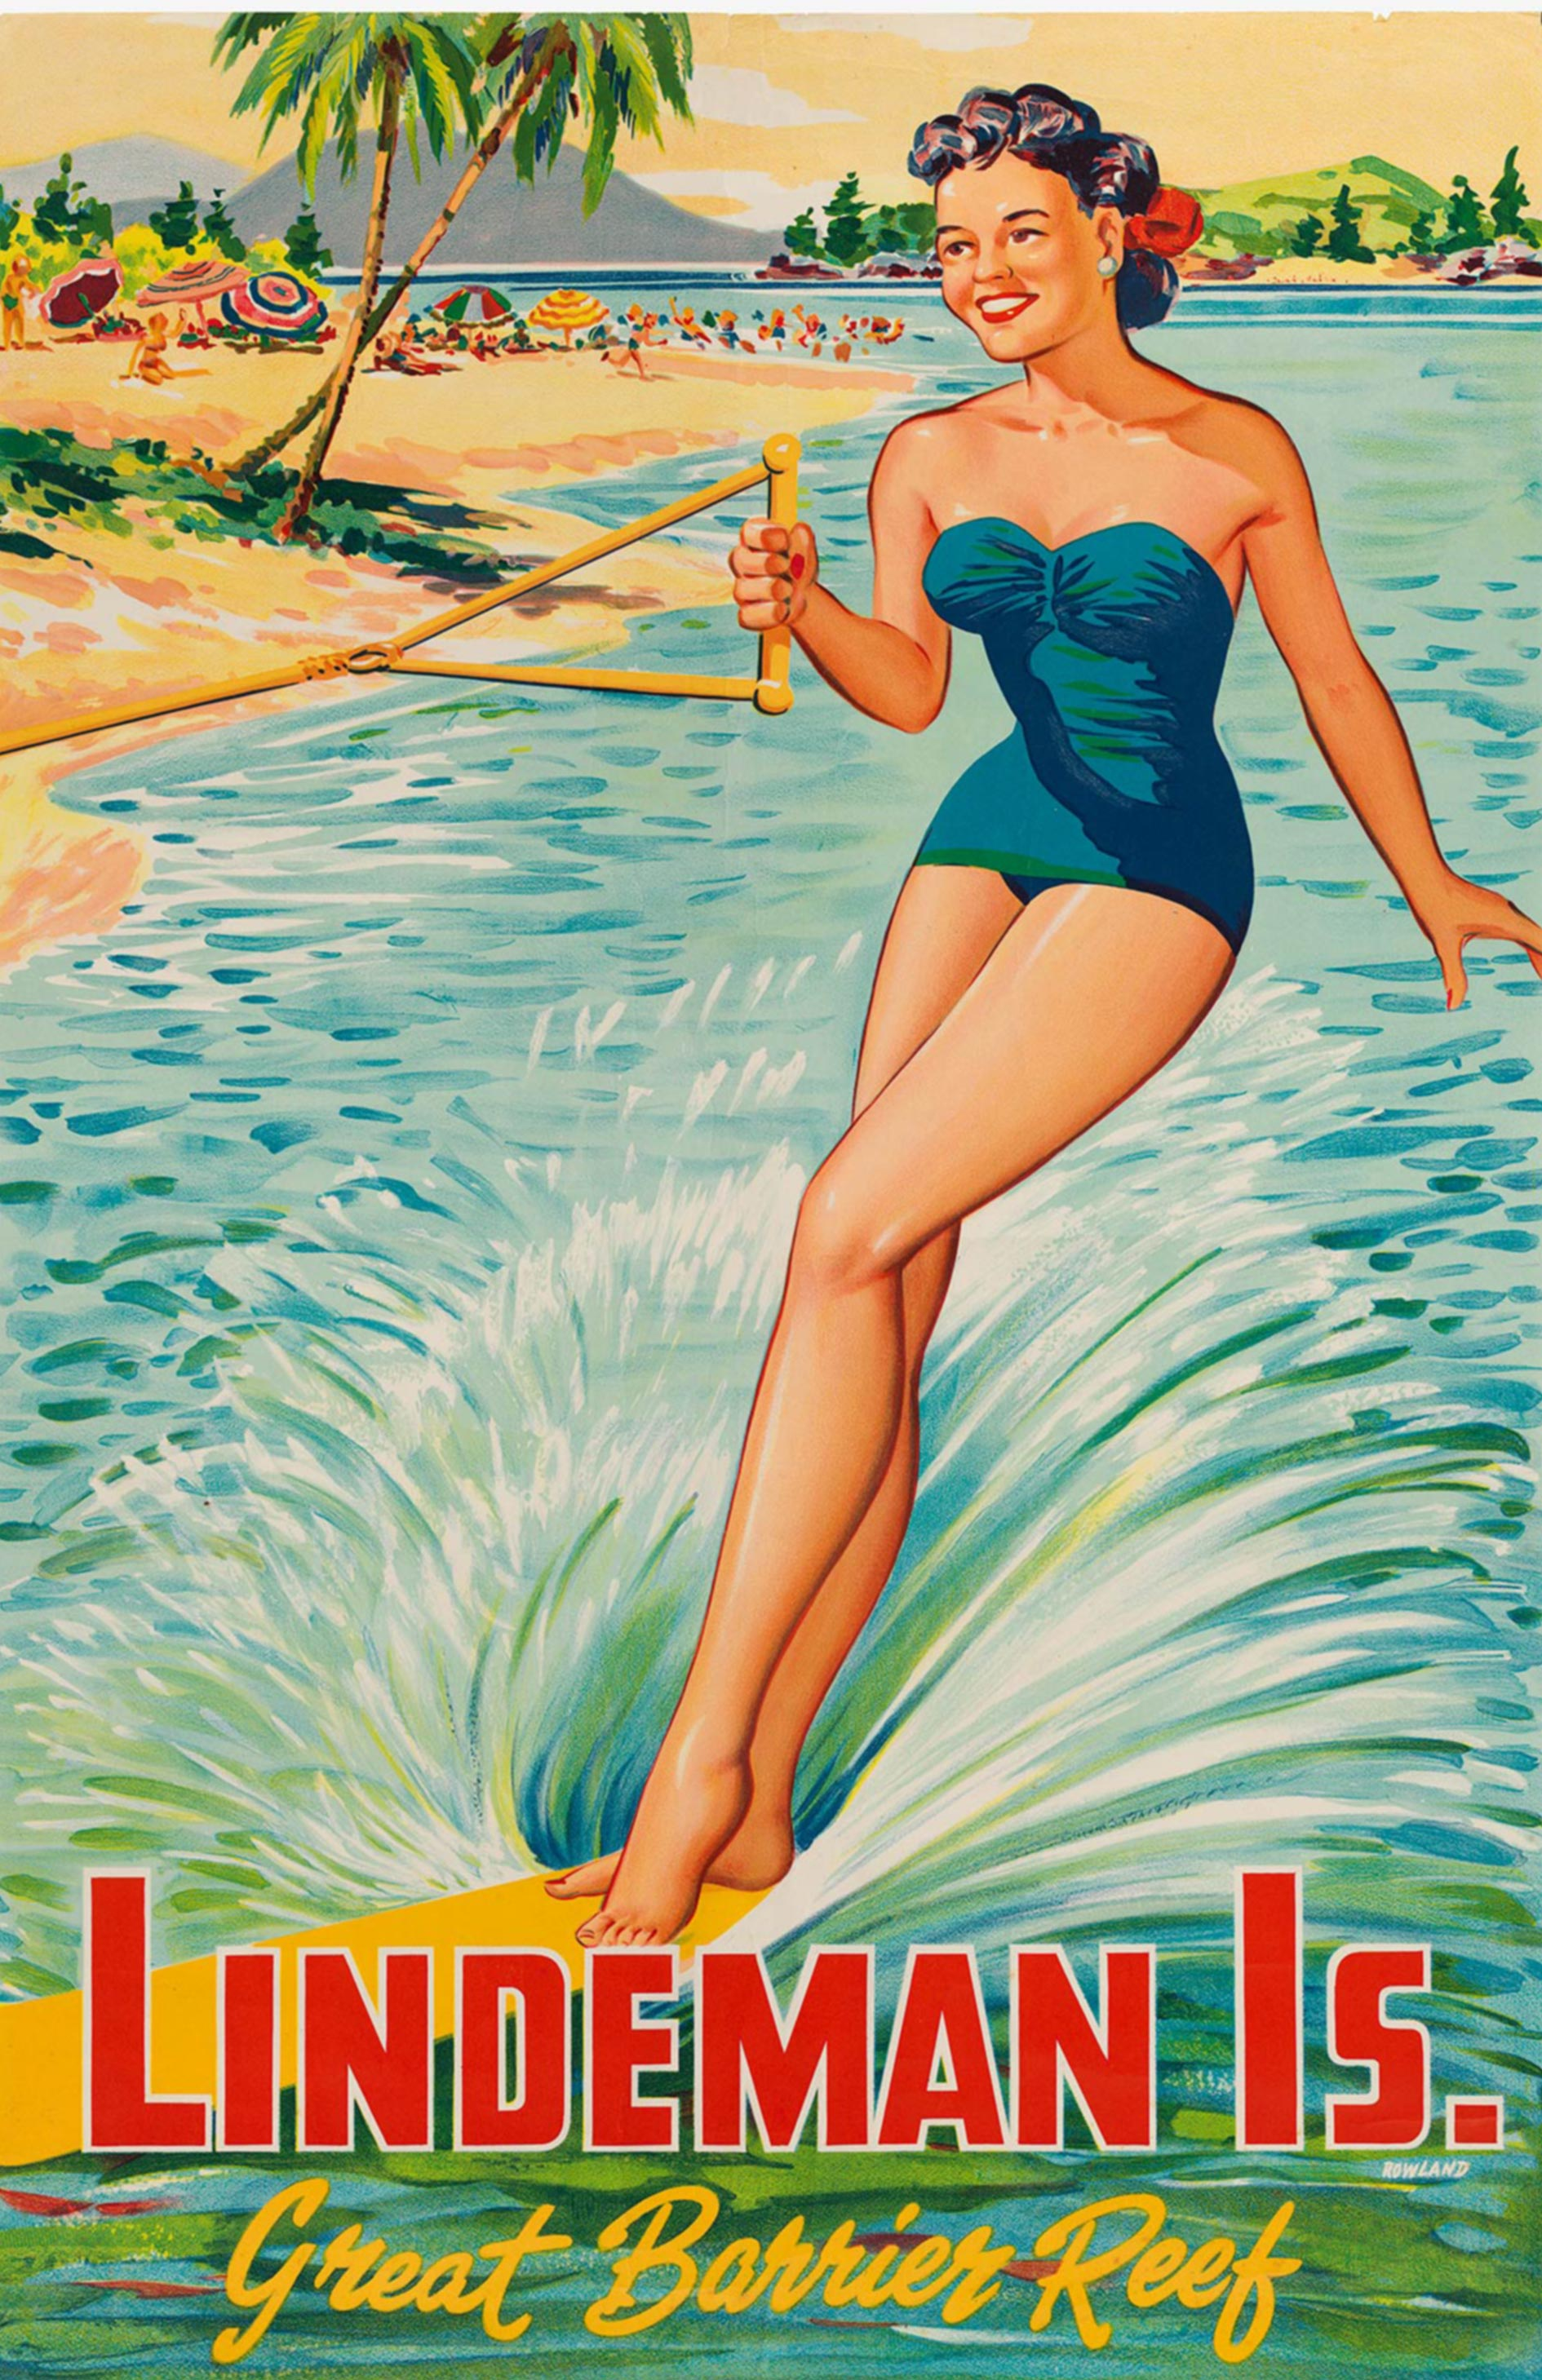 Lindeman Is. Great Barrier Reef, ca. 1940. Poster by Frank Rowland. HPT TOU 052